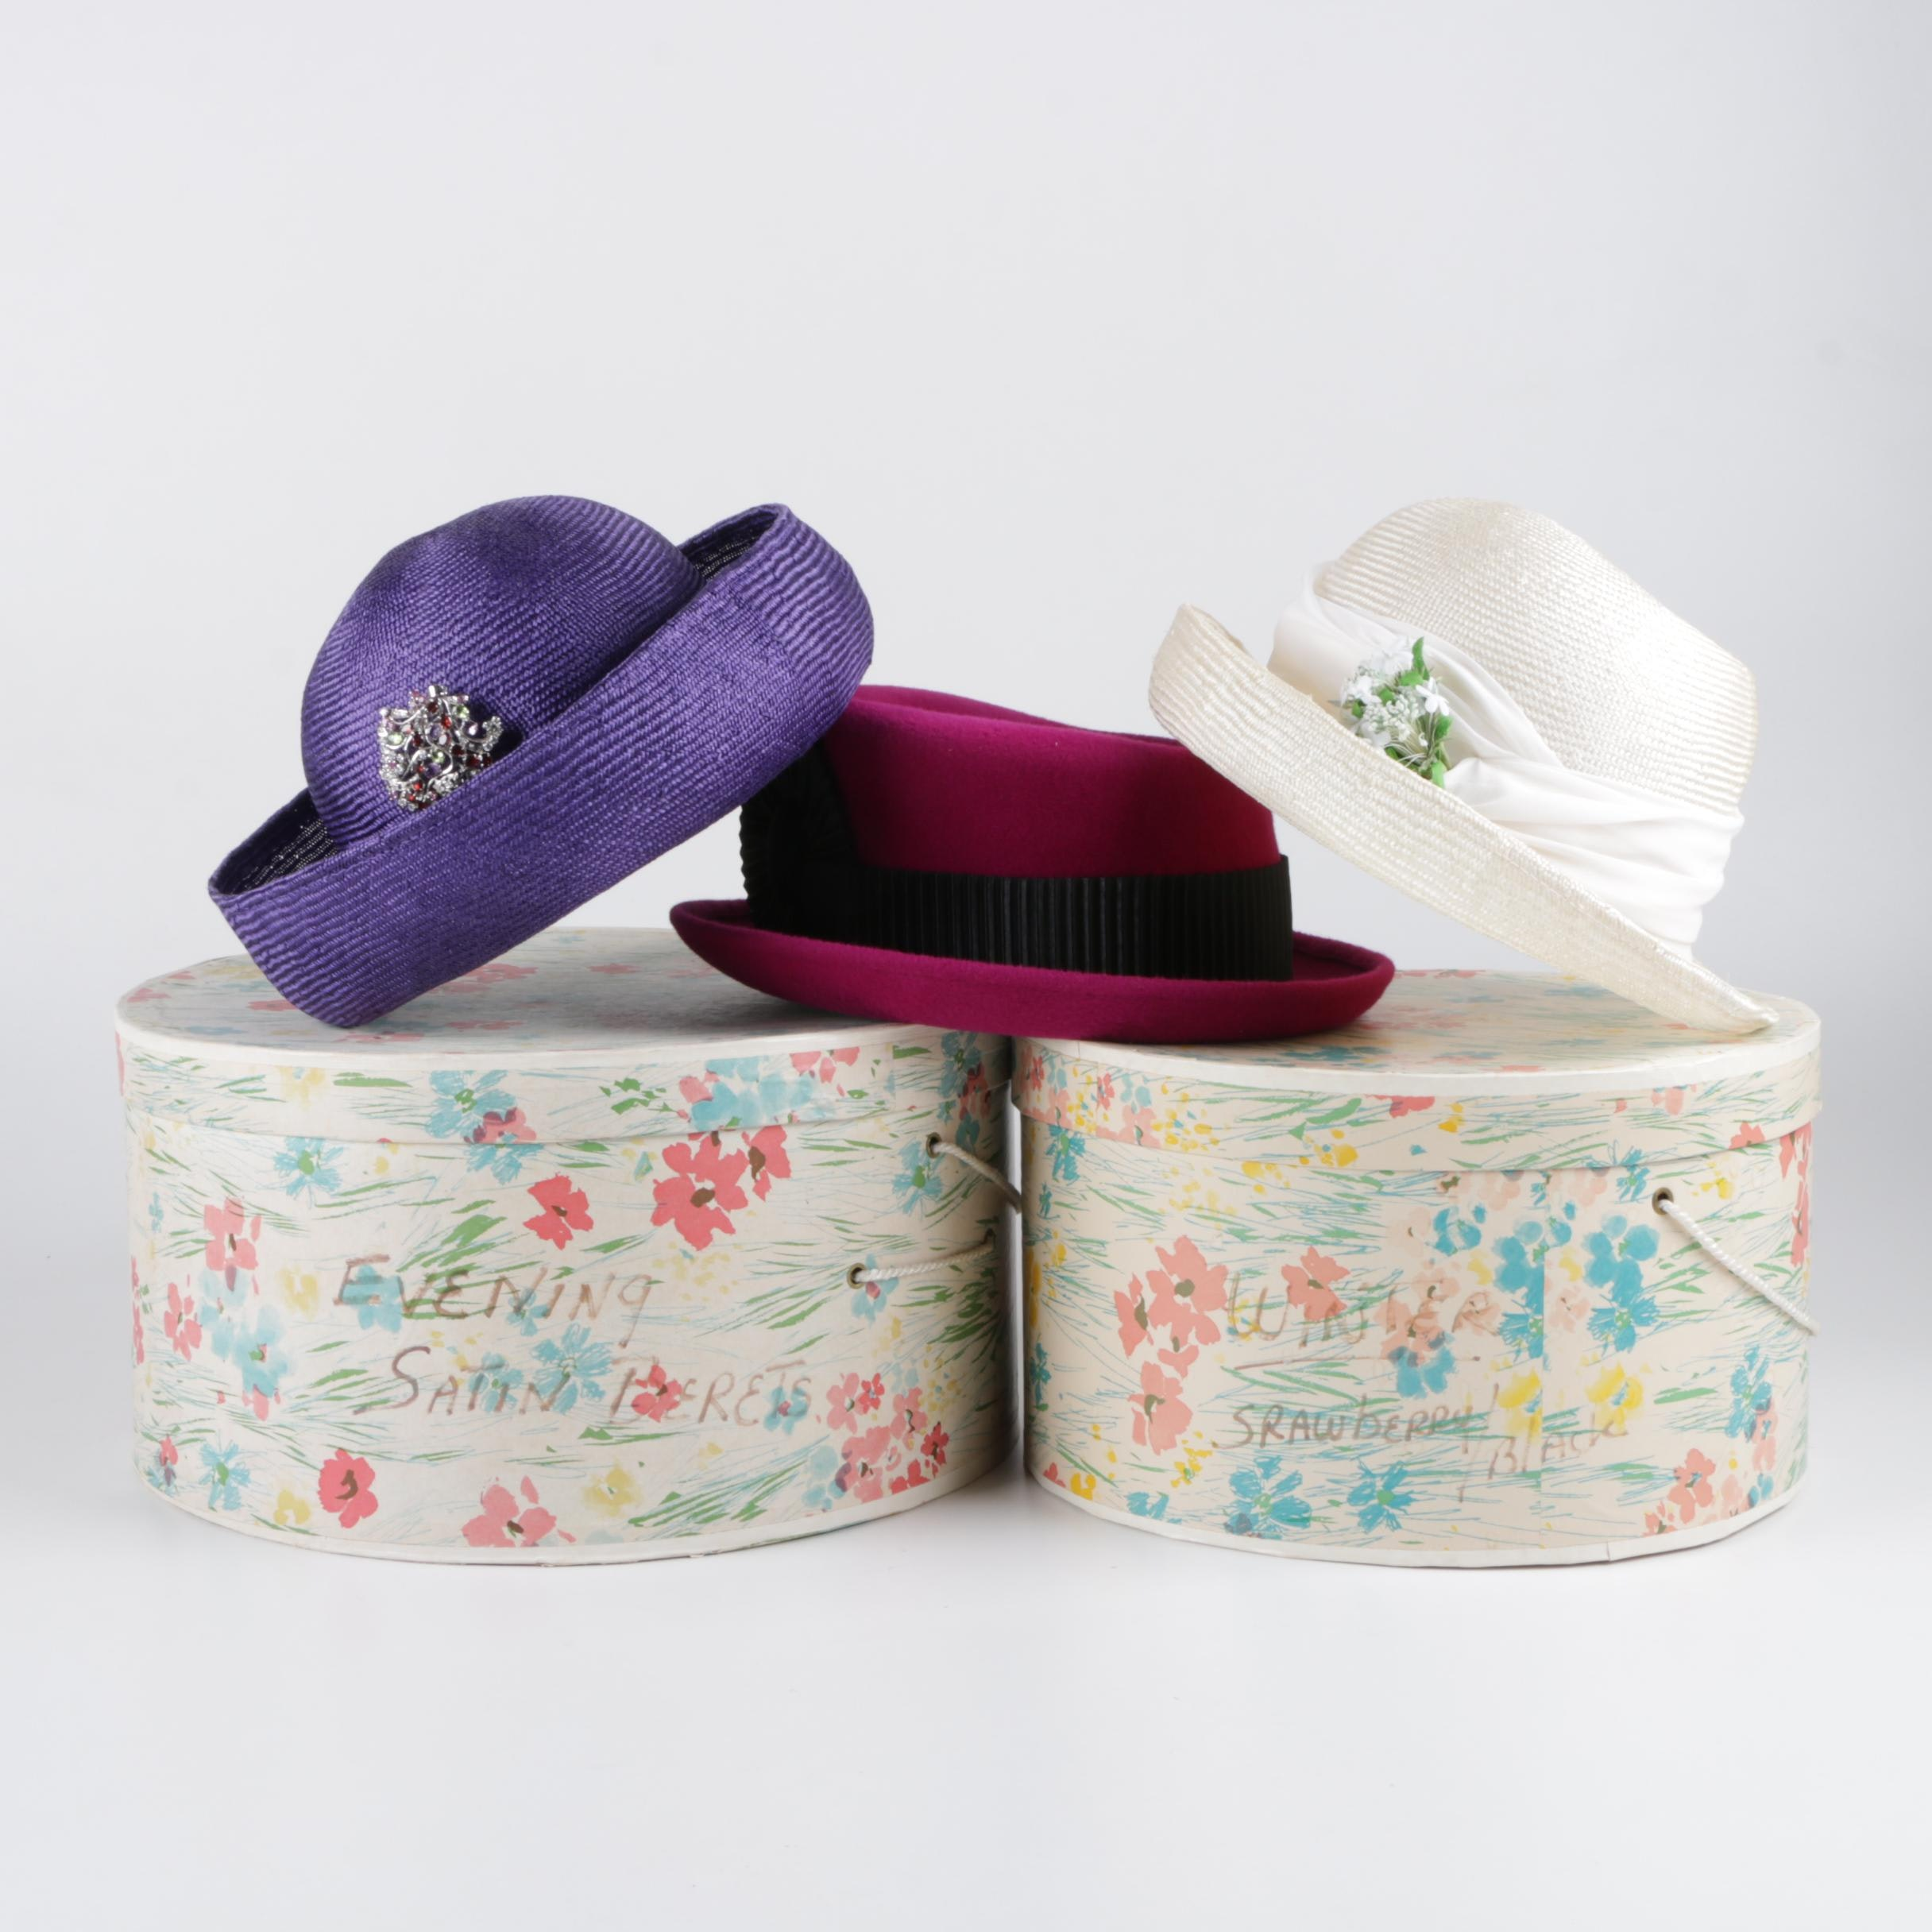 Women's Hats and Hatboxes Including Eric Javits and Henri Bendel